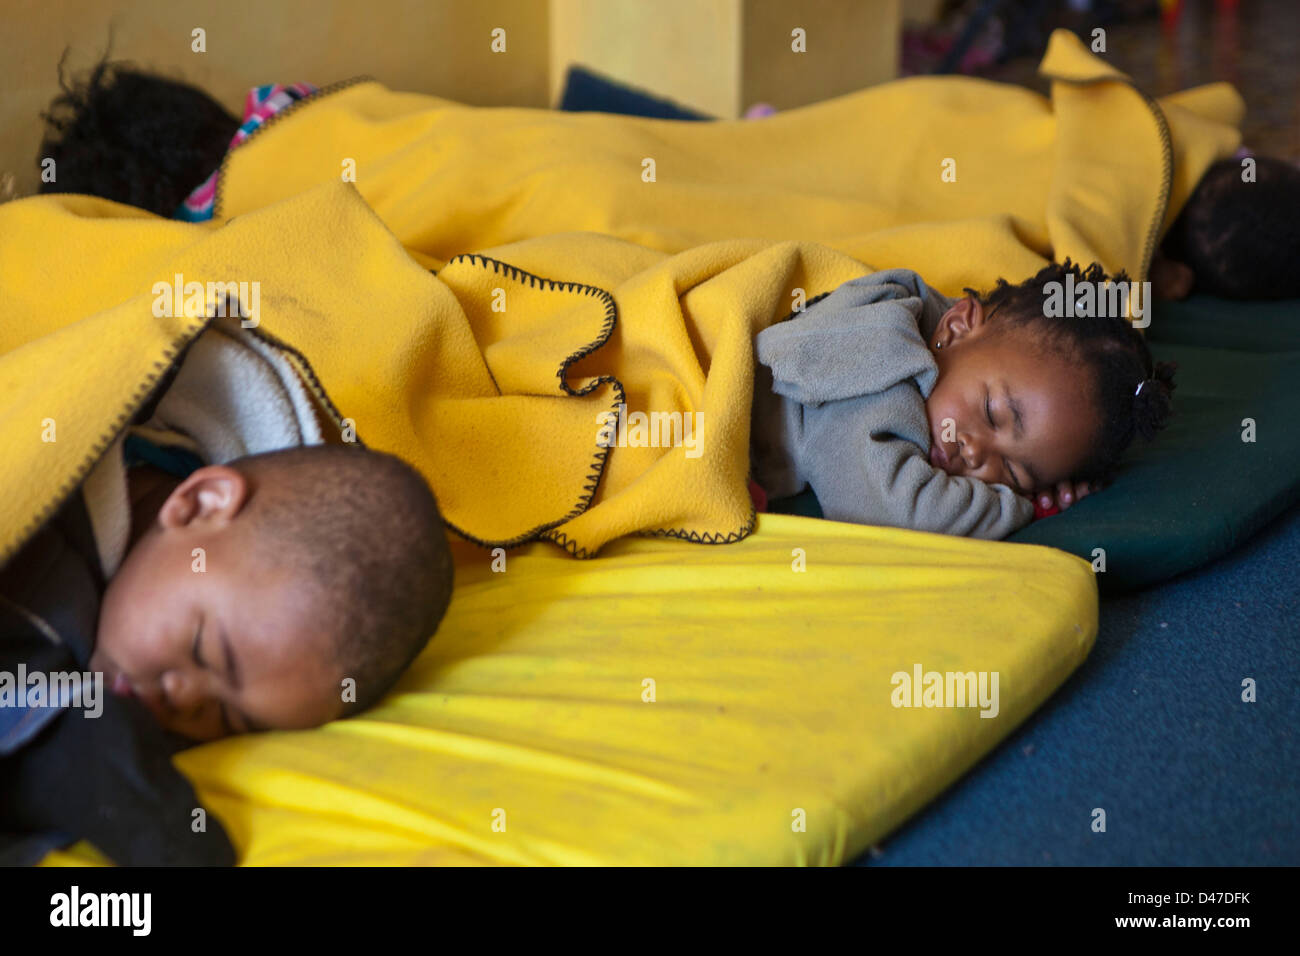 Floor mats to sleep on - Young South African Children Lie Down On Mats For A Sleep During Rest Time In An